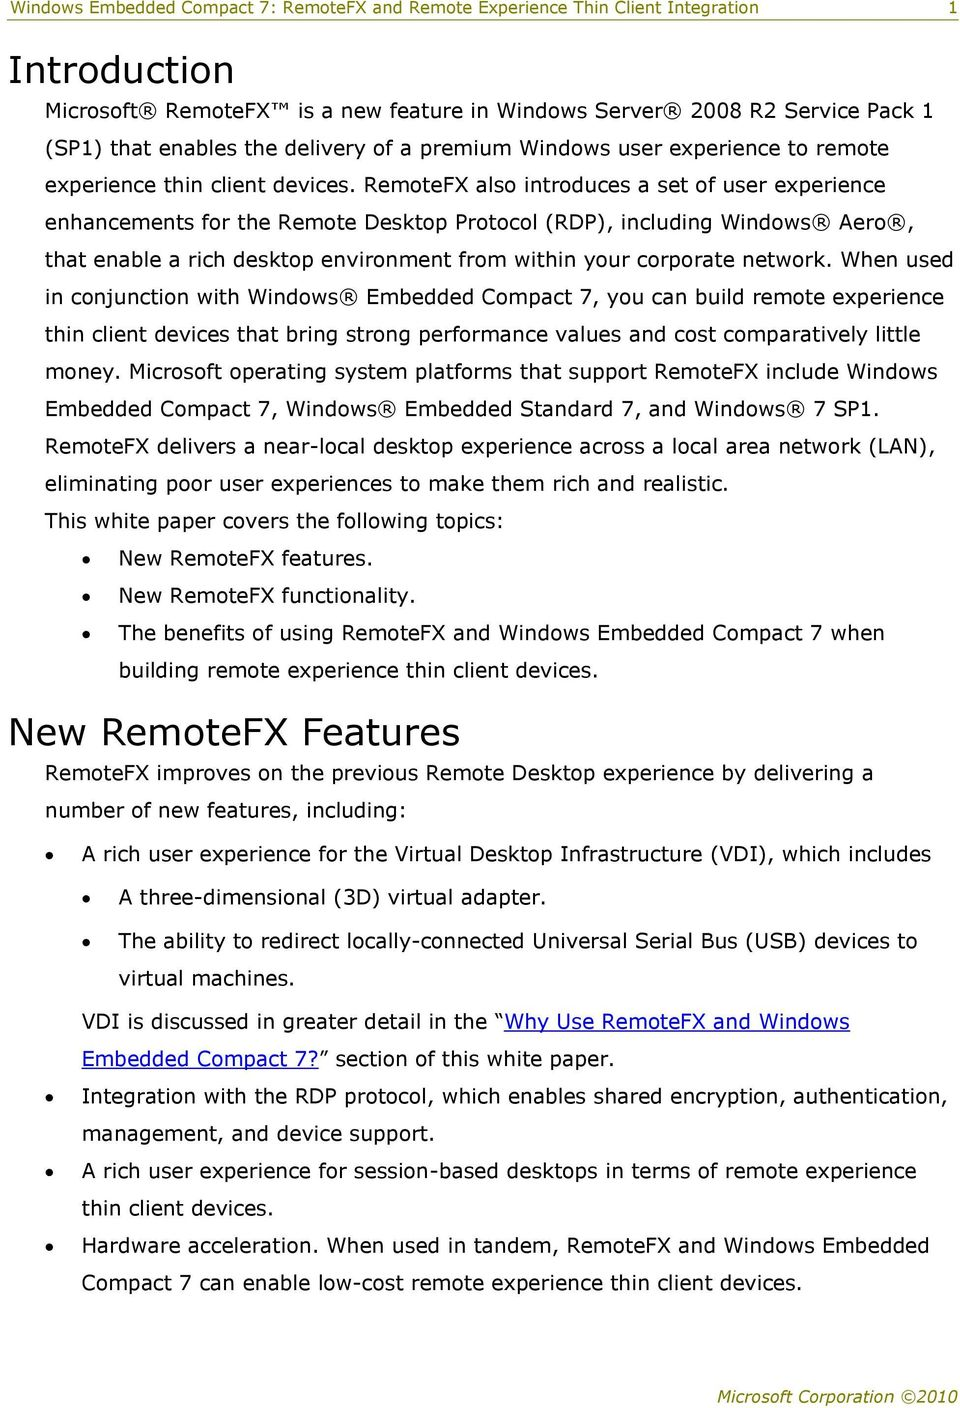 RemoteFX also introduces a set of user experience enhancements for the Remote Desktop Protocol (RDP), including Windows Aero, that enable a rich desktop environment from within your corporate network.